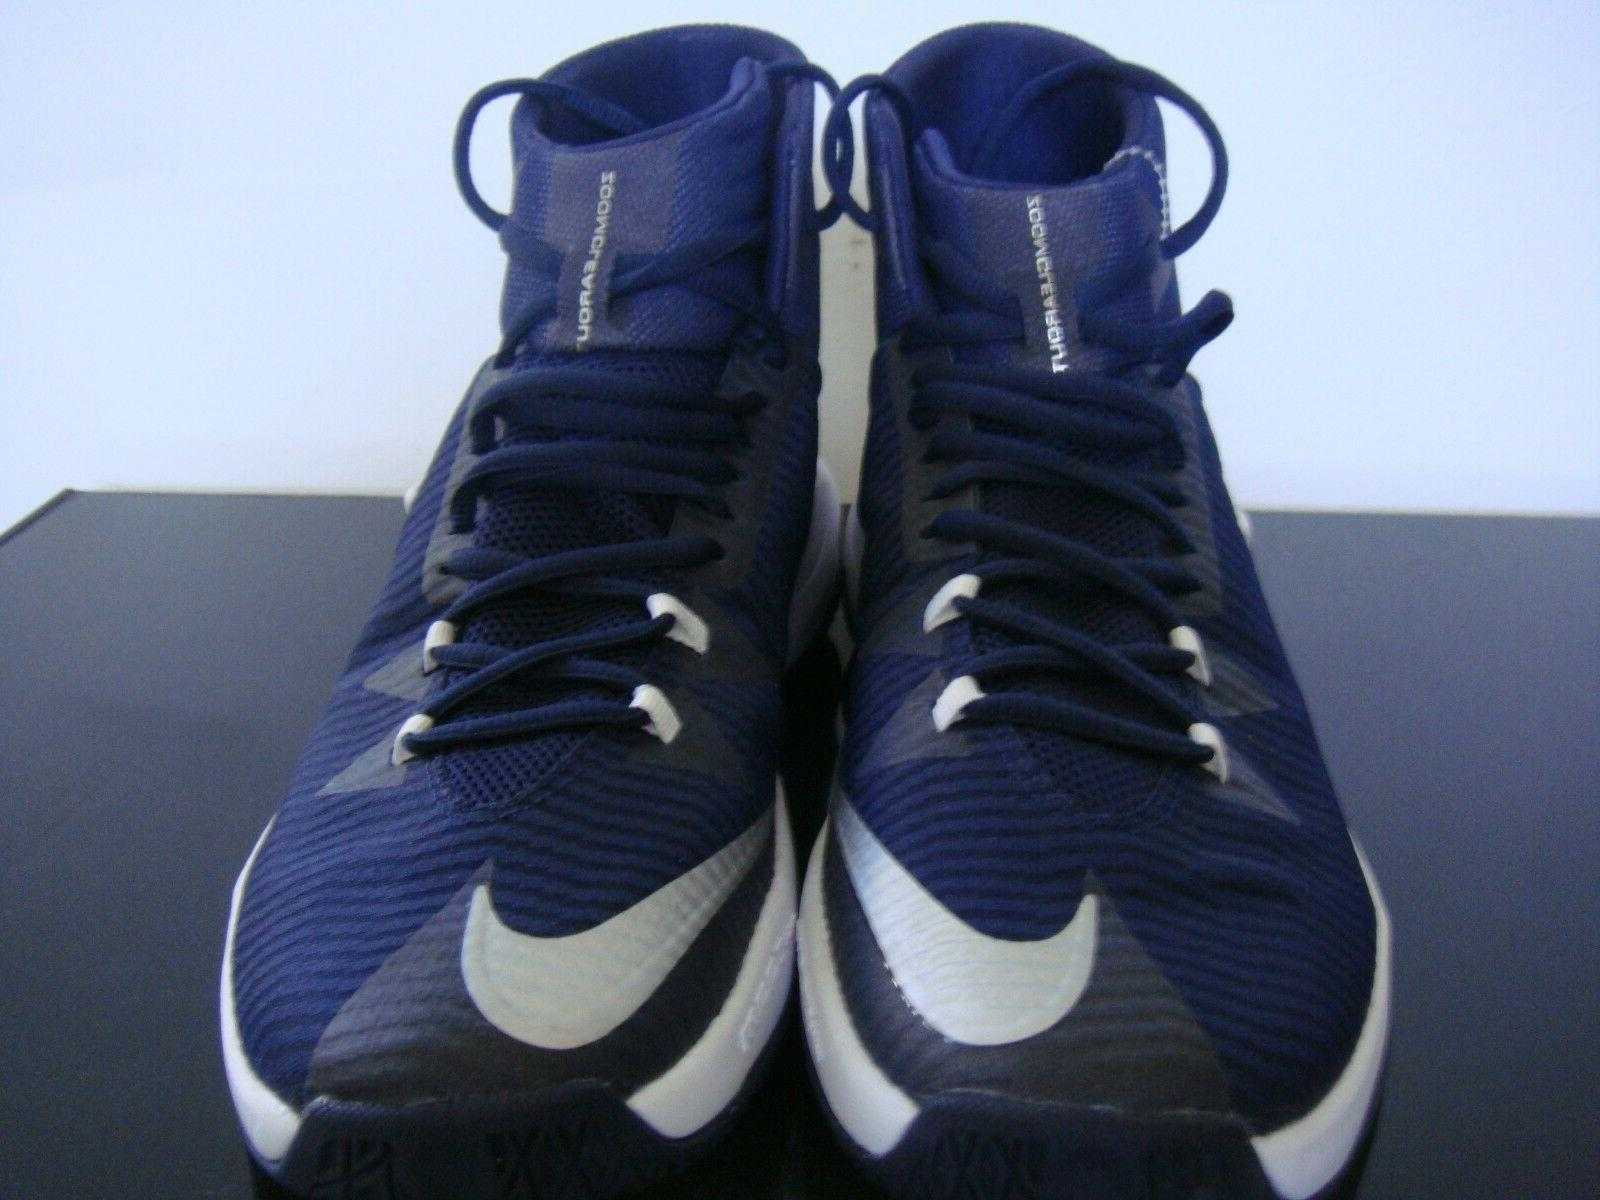 NIKE ZOOM TB SHOES SIZE 11.5 856486-442